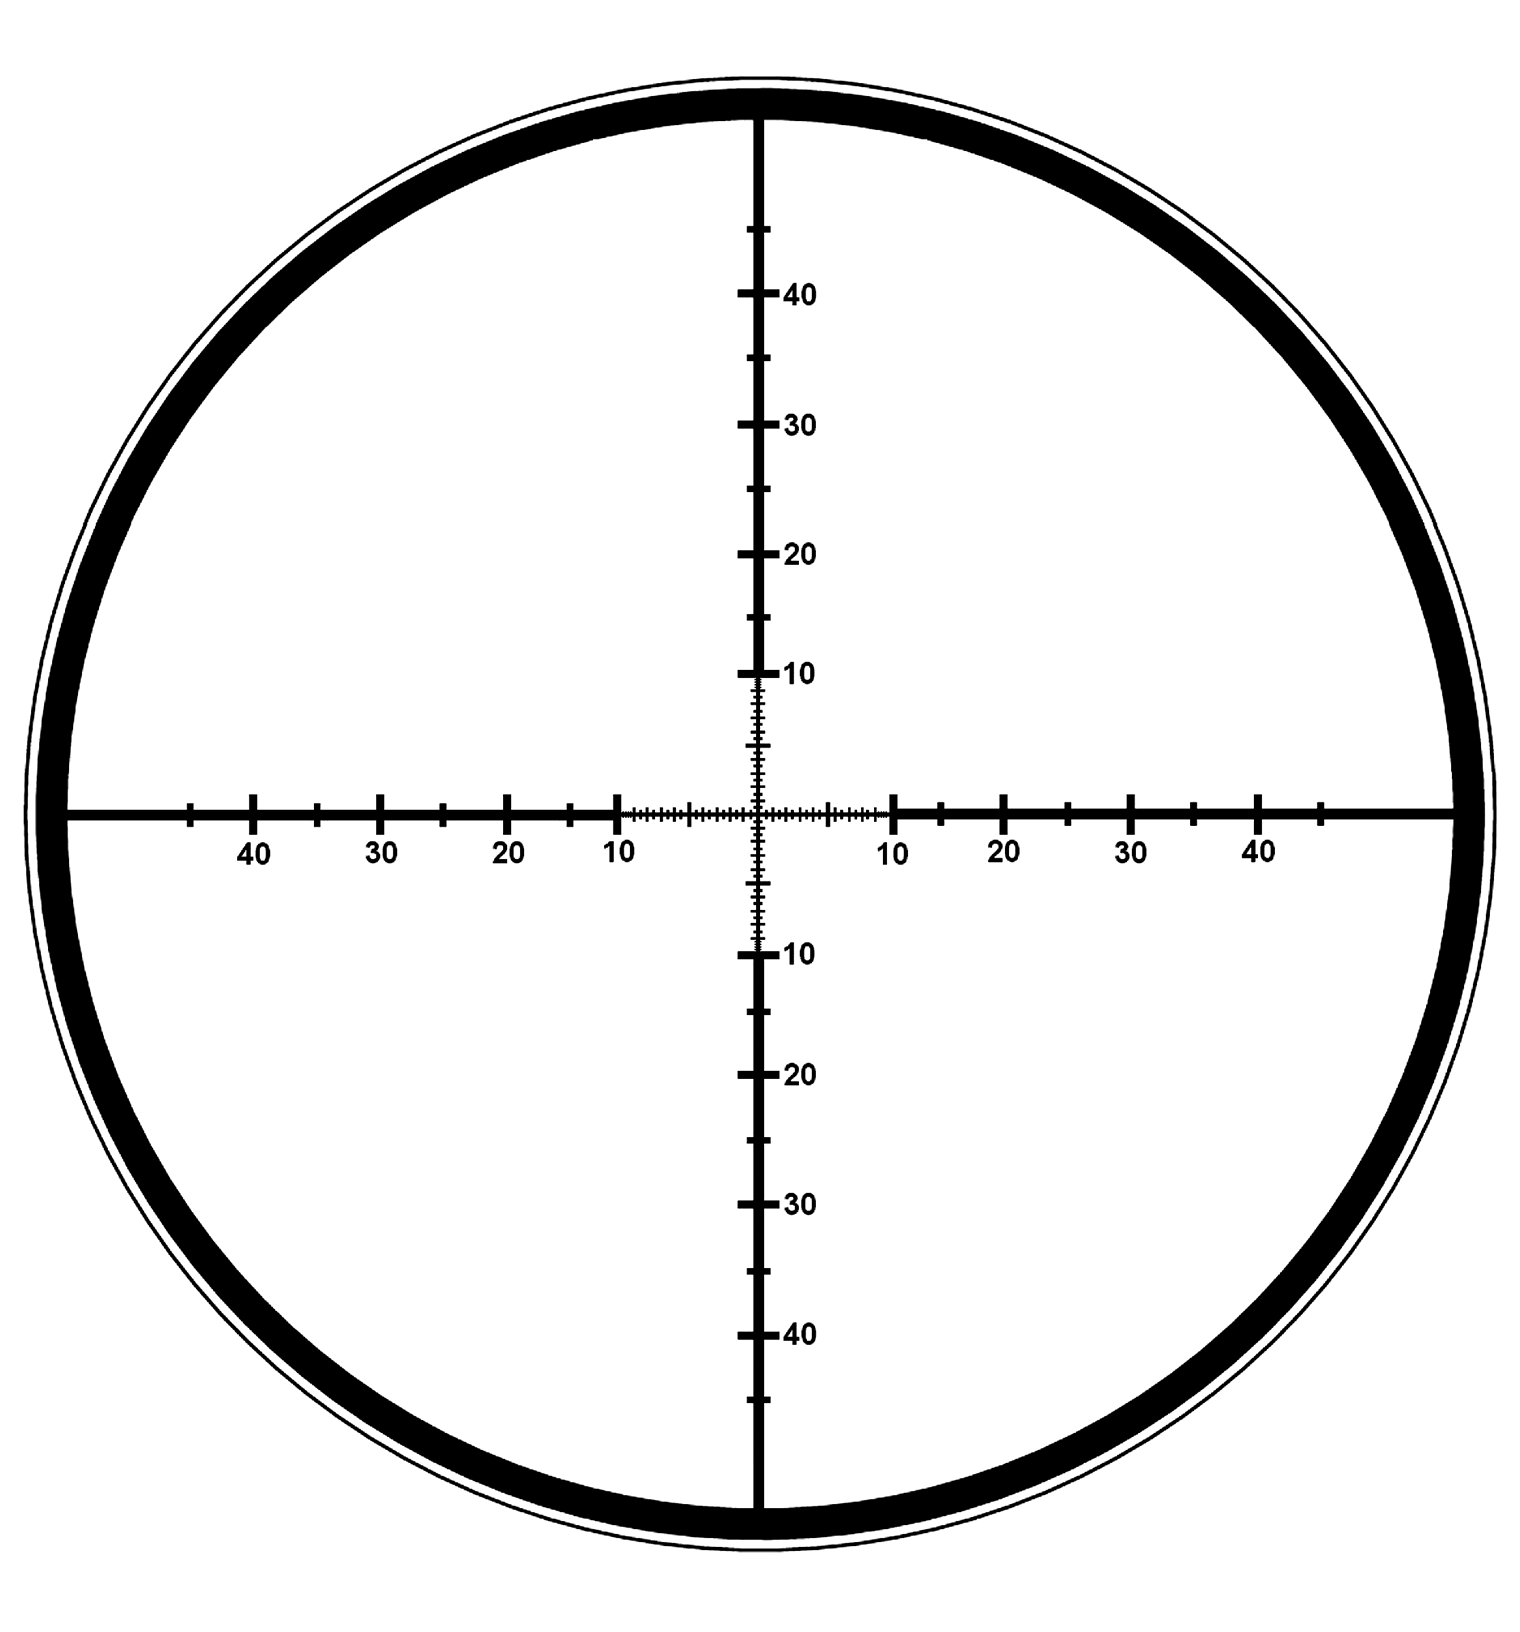 The picture of a reticle with vertical and horizontal scales